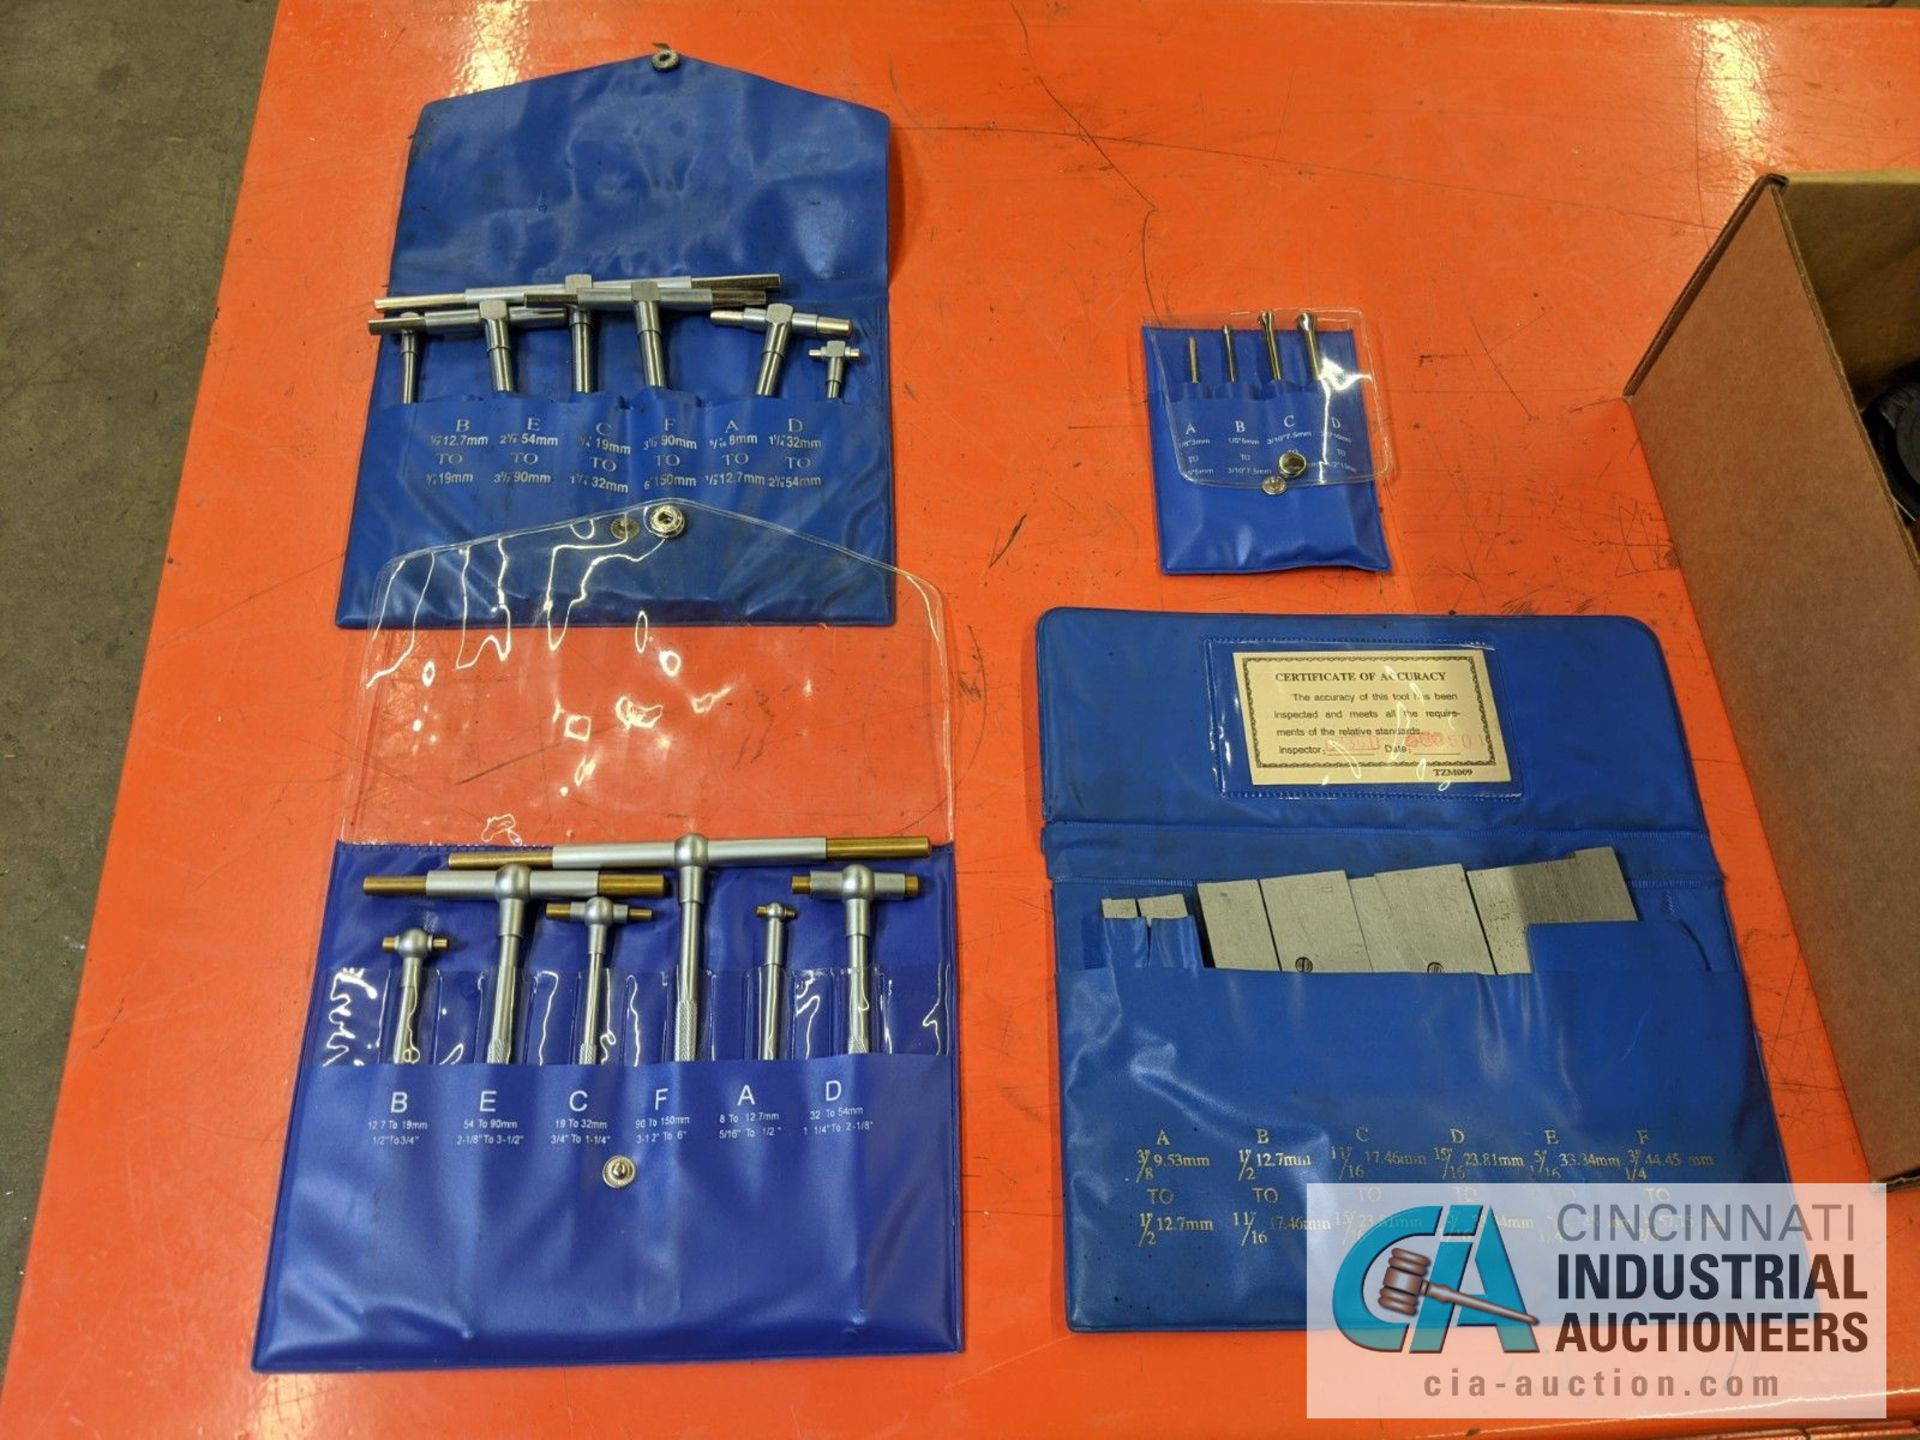 (LOT) INSPECTION; T-HANDLE MICROMETERS, PARALLEL SET AND Z-AXIAL PRESET GAUGE - Image 2 of 8